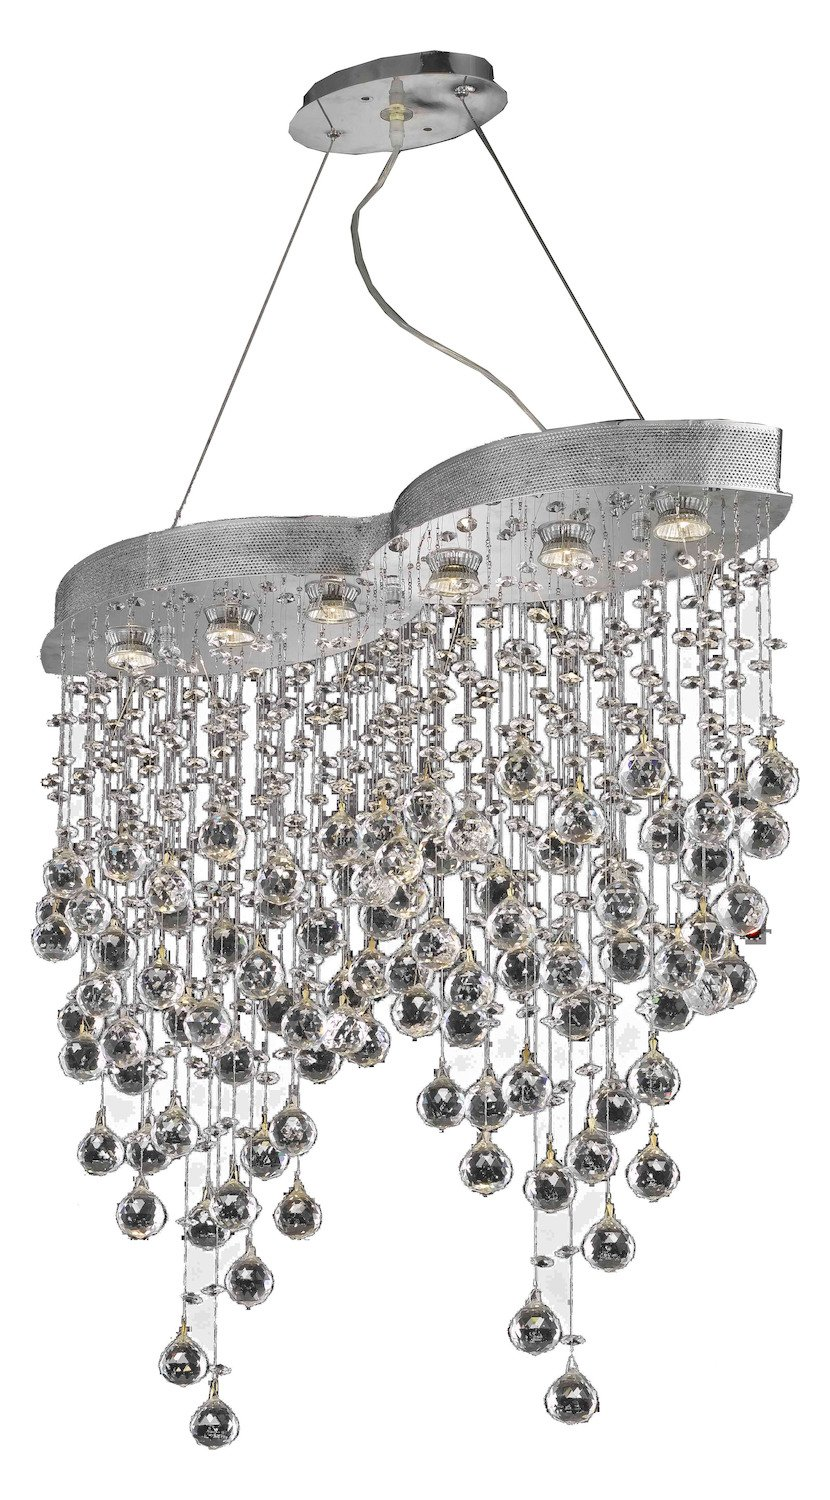 Galaxy Collection 6-Light Chrome Fix With Clear Swarovski Strass Crystal